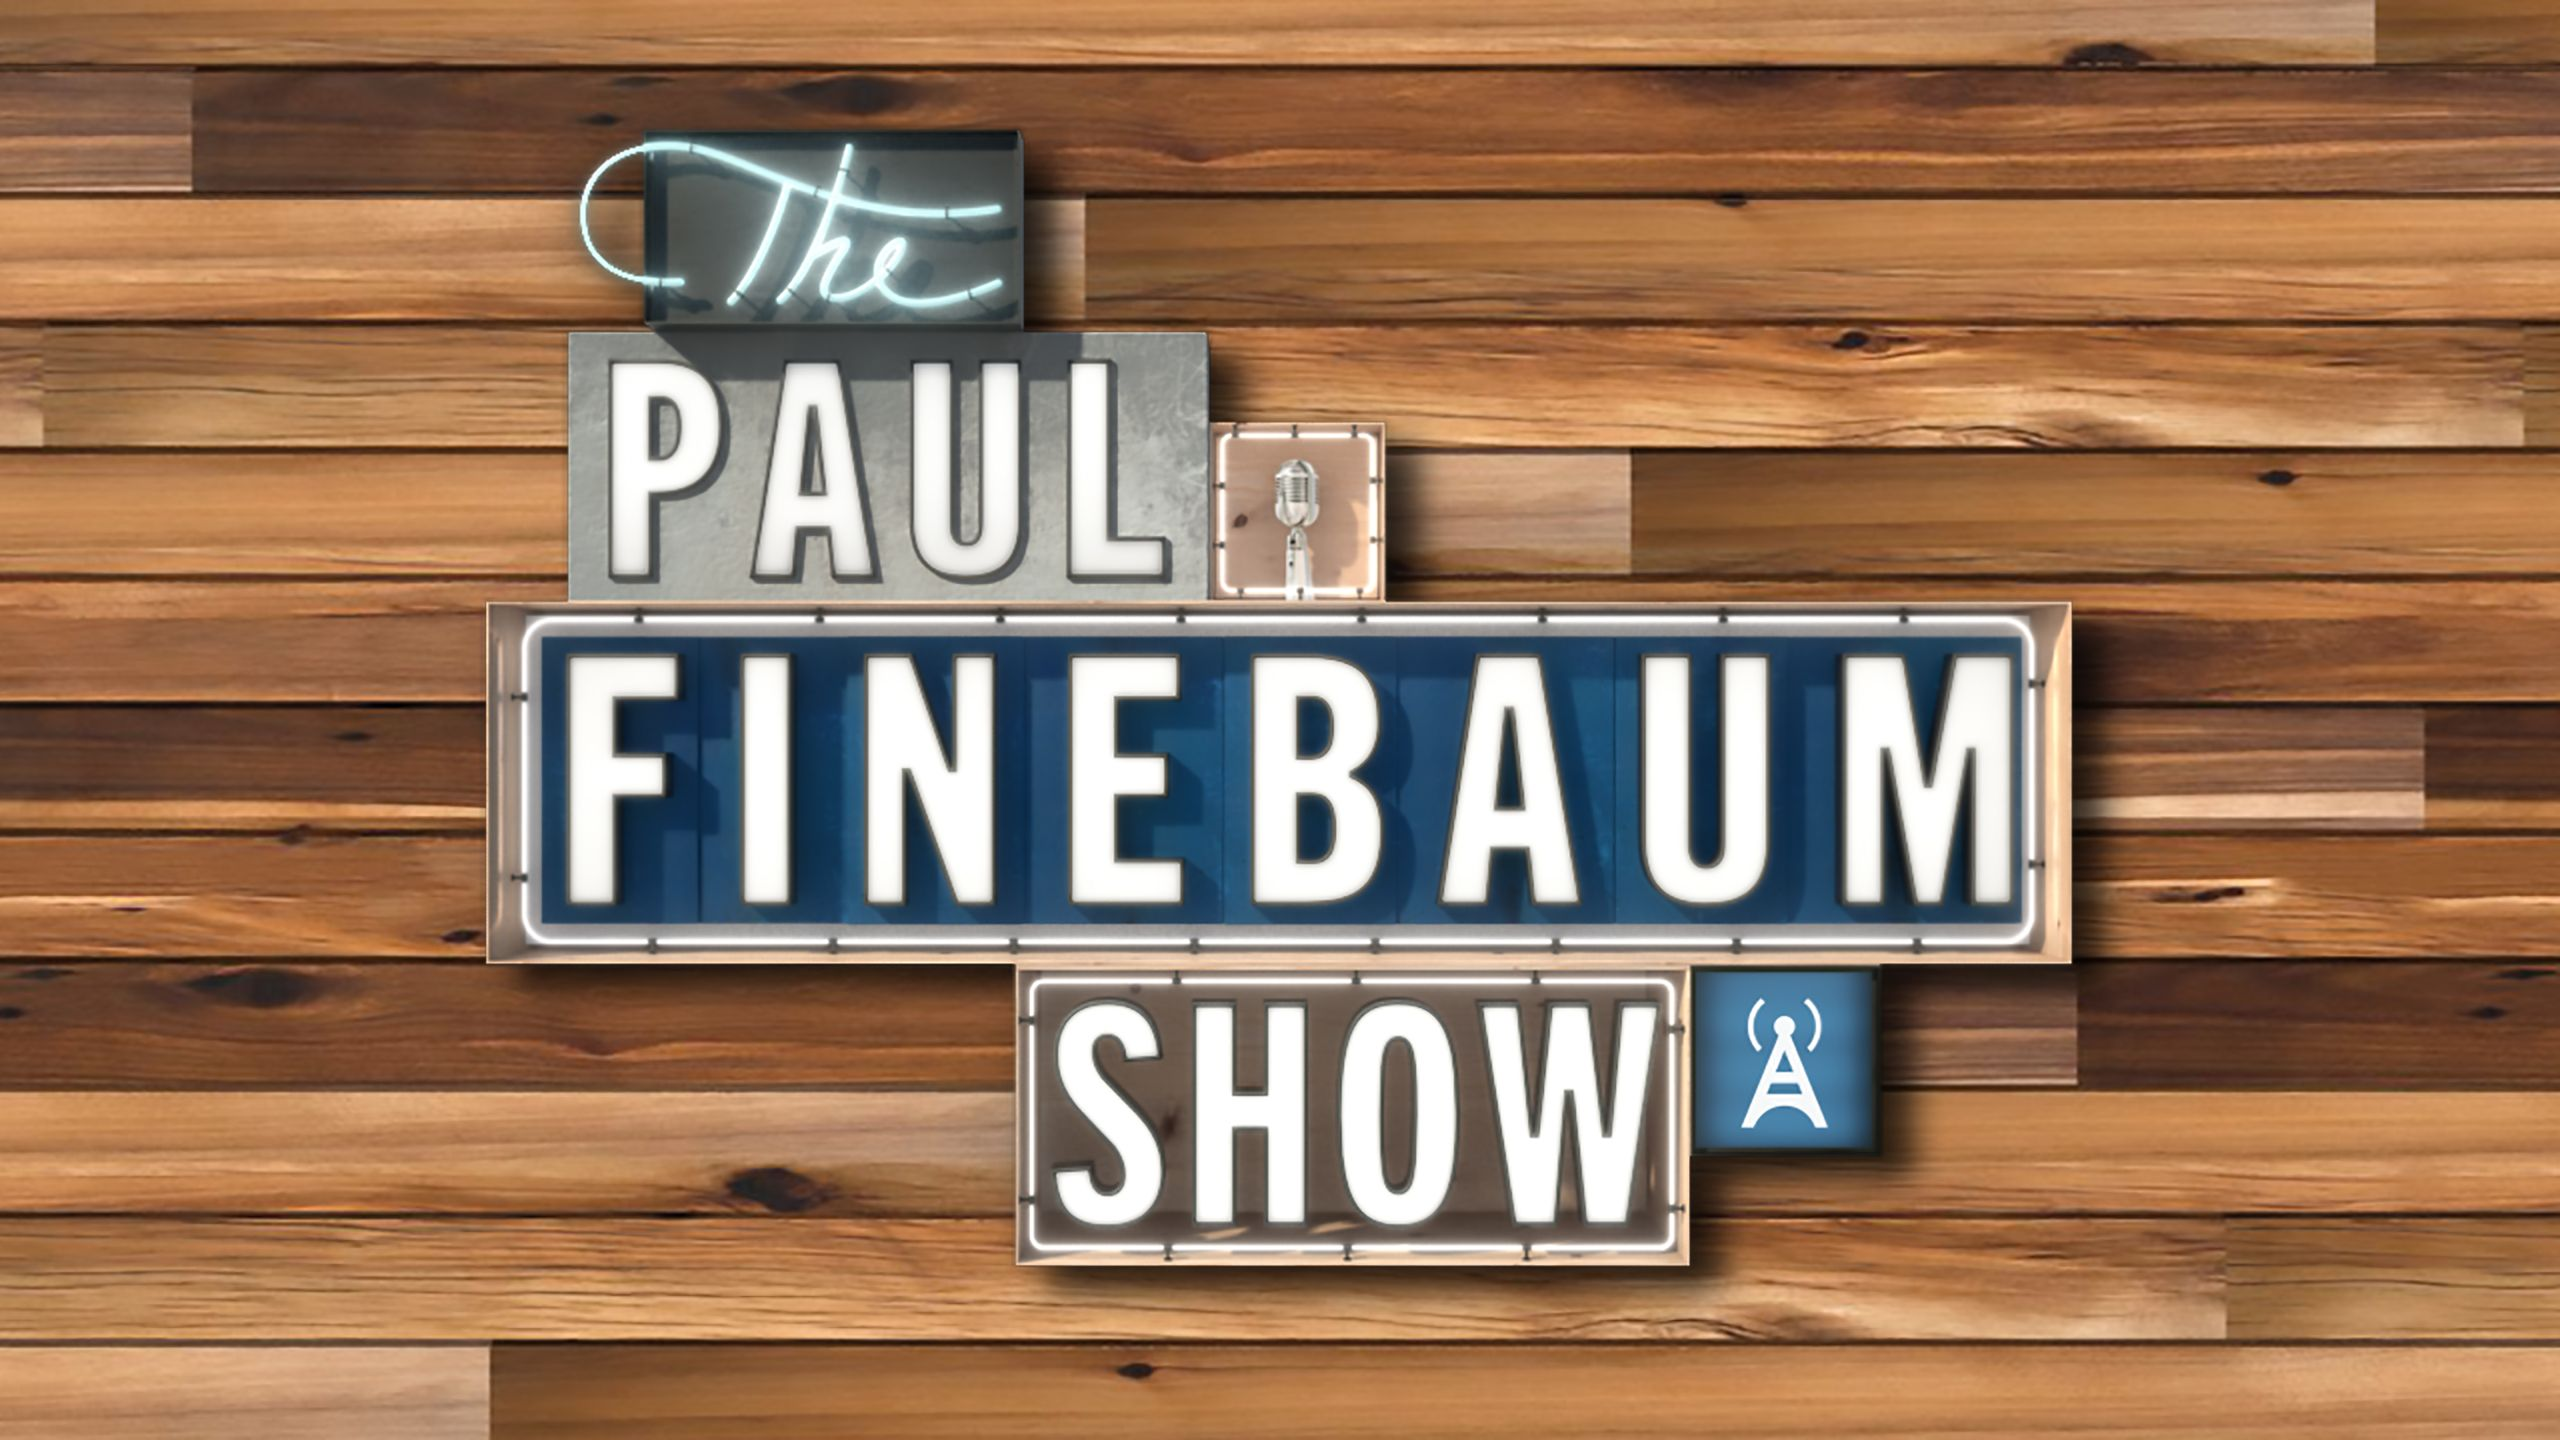 Fri, 10/20 - The Paul Finebaum Show Presented by Johnsonville